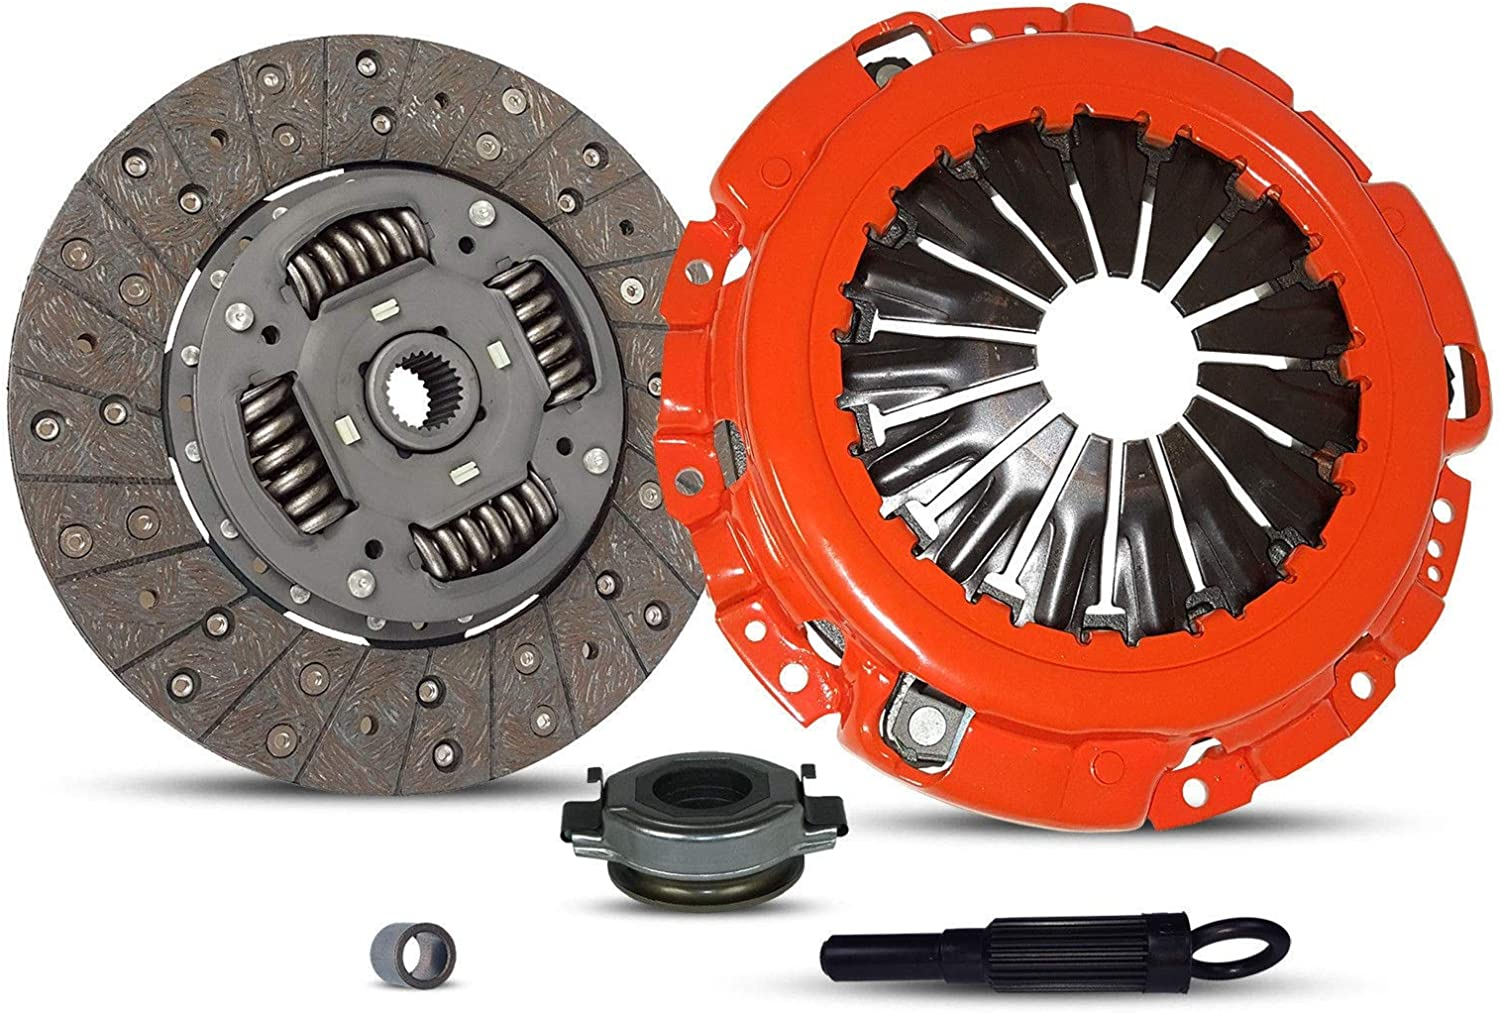 Clutch Kit works with Nissan Altima Maxima S Se Touring Se-R Sl Luxury Premium Base Gle Gxe Sedan 4-Door 2002-2006 3.5L 3498CC V6 GAS DOHC Naturally Aspirated Stage 1